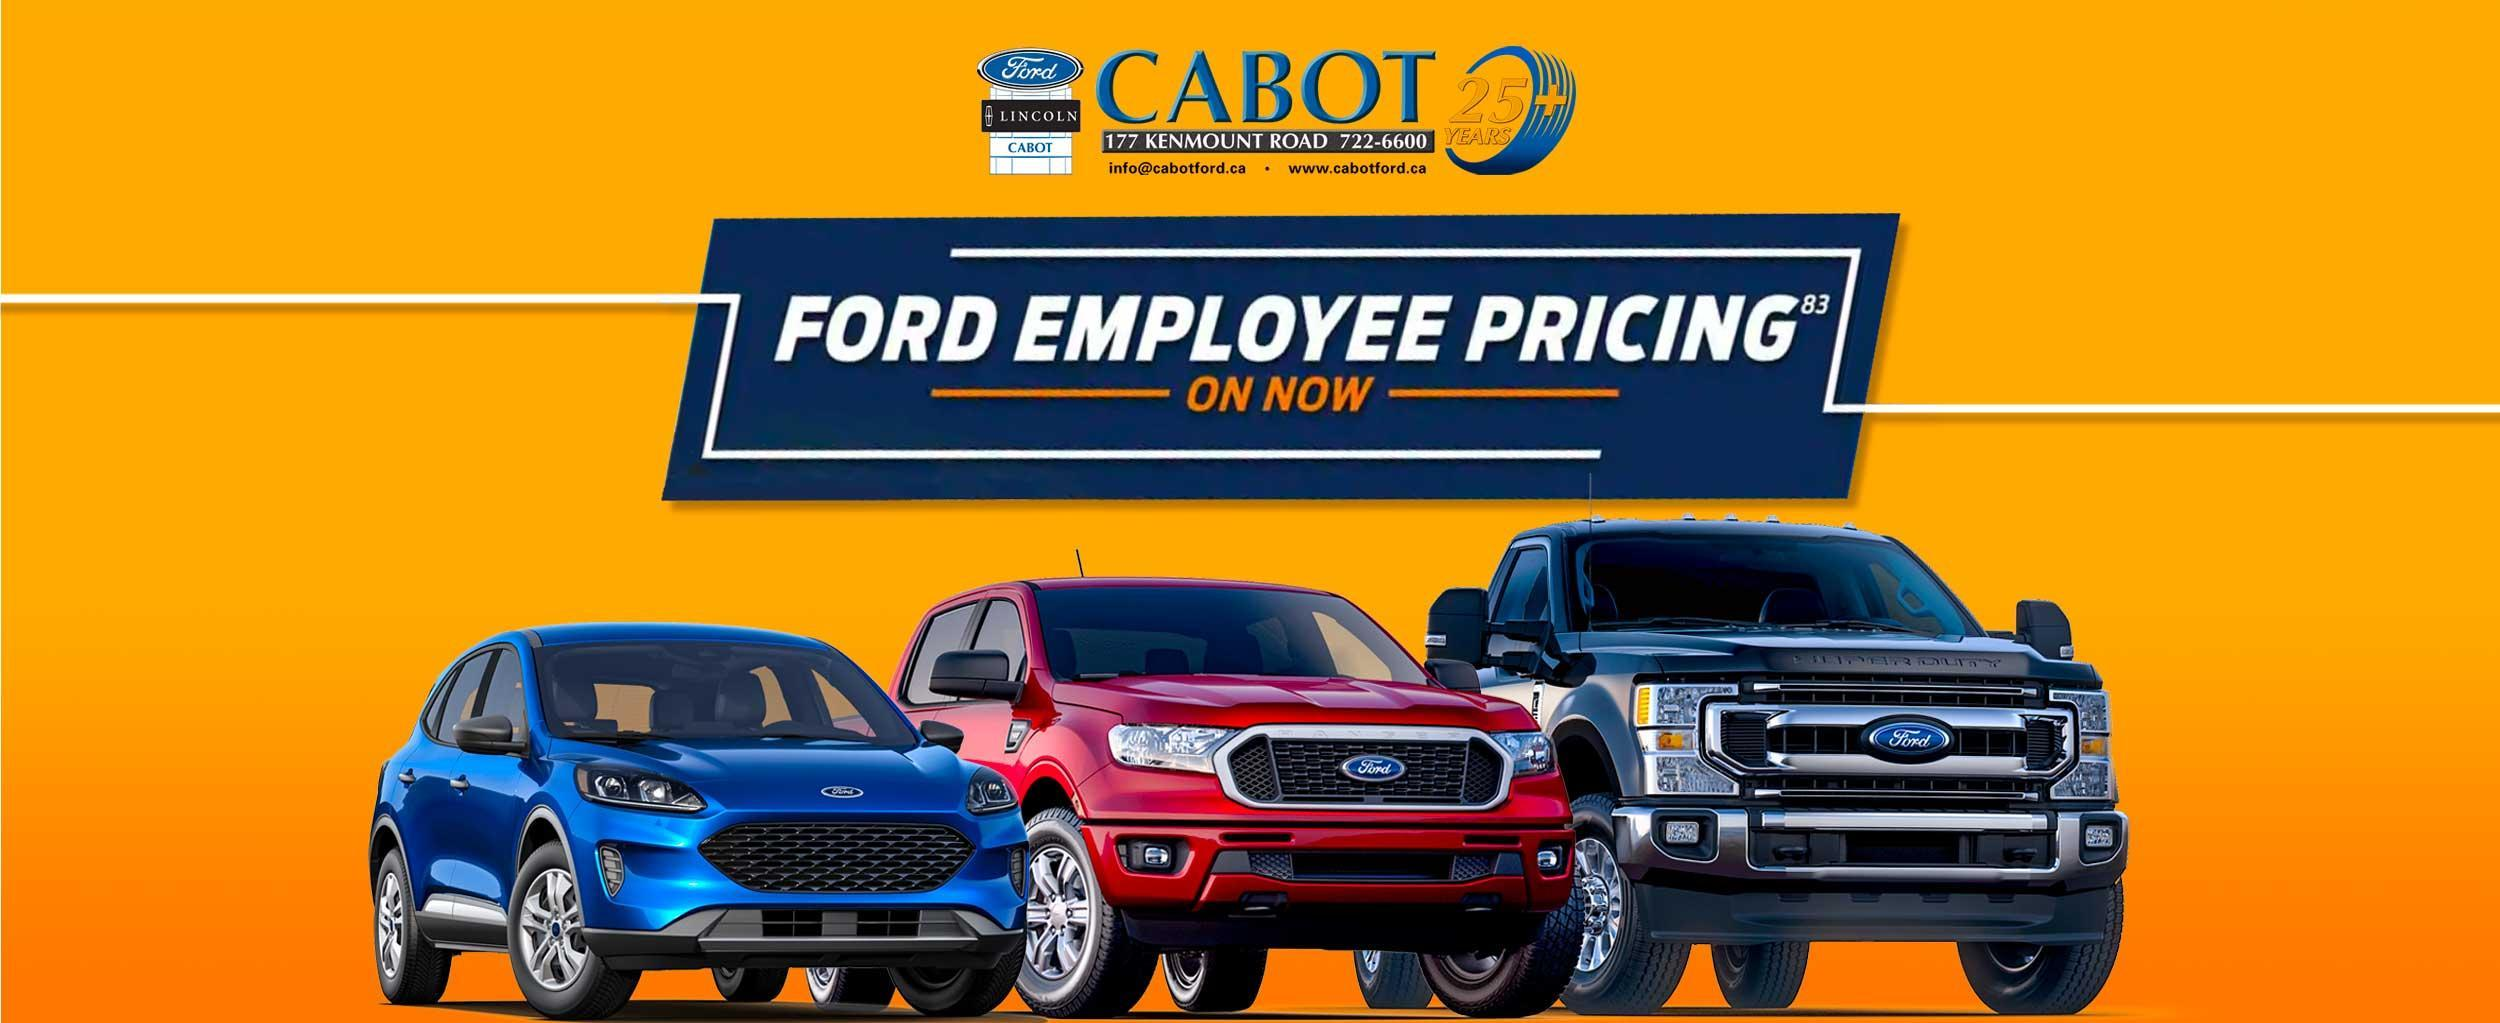 FORD EMPLOYEE PRICING is back! For a limited time only, YOU PAY WHAT WE PAY!